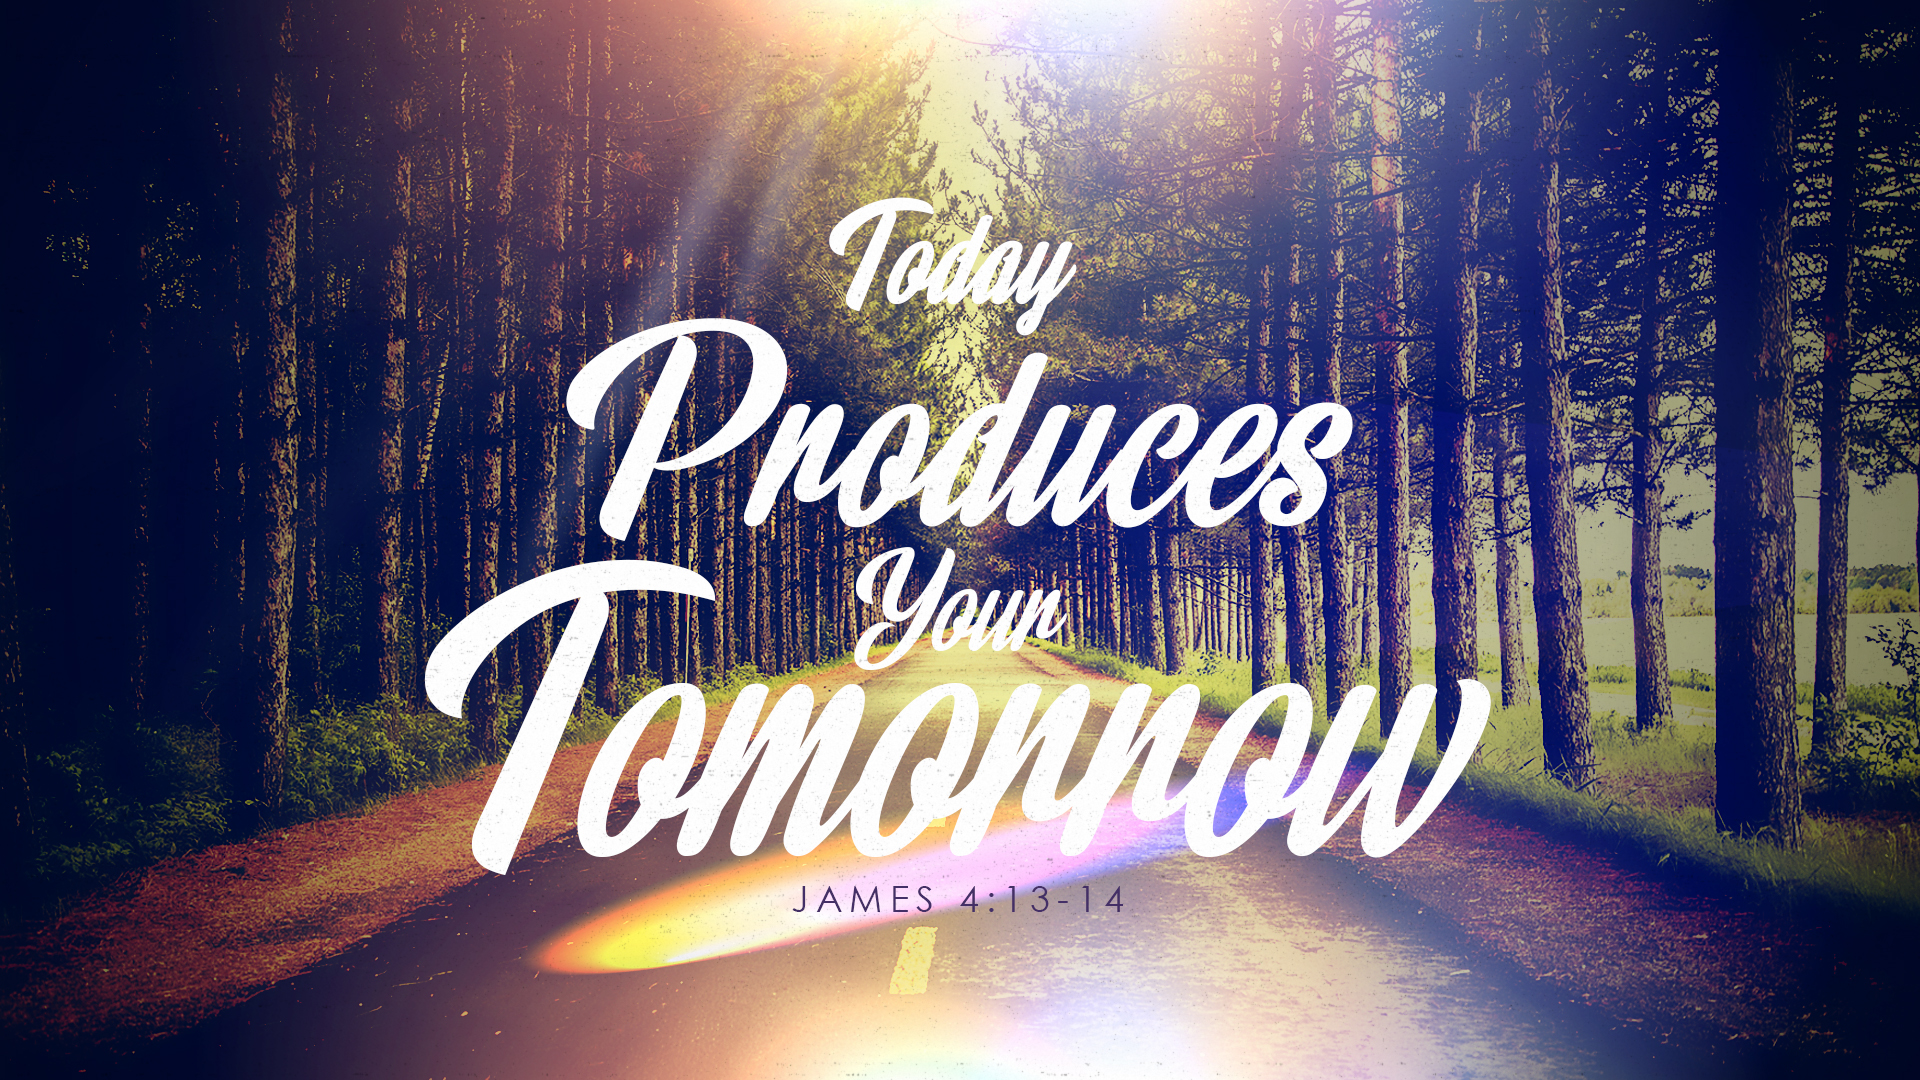 HD Today Produces Your Tomorrow.jpg